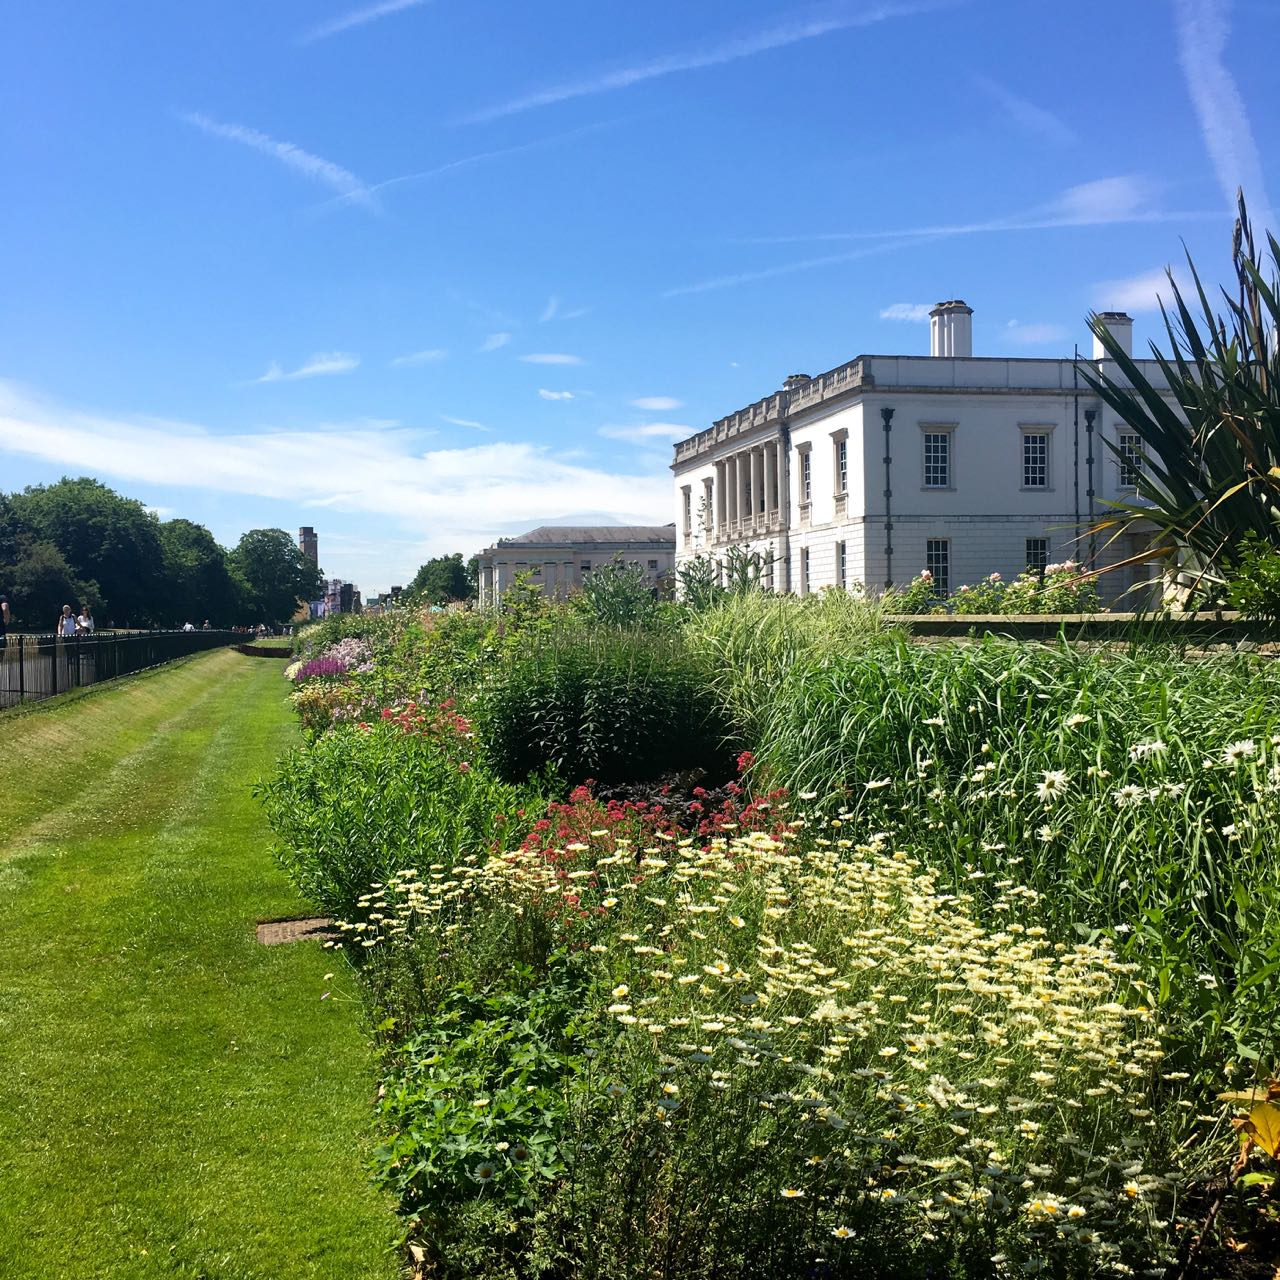 Looking along the Long Borders by the Queen's House